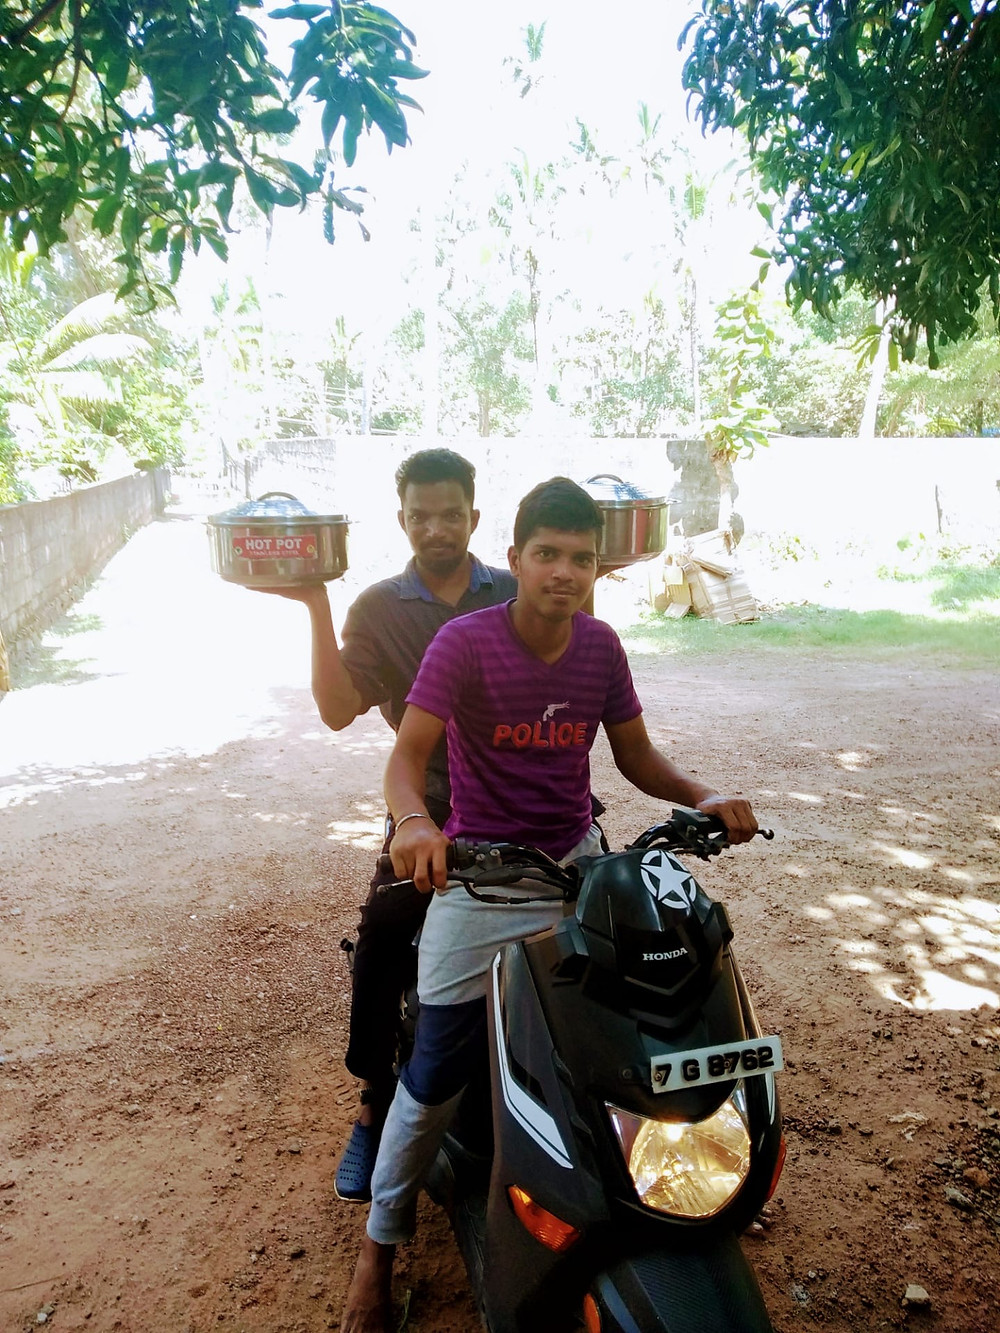 Indian men delivering food on a motorbike